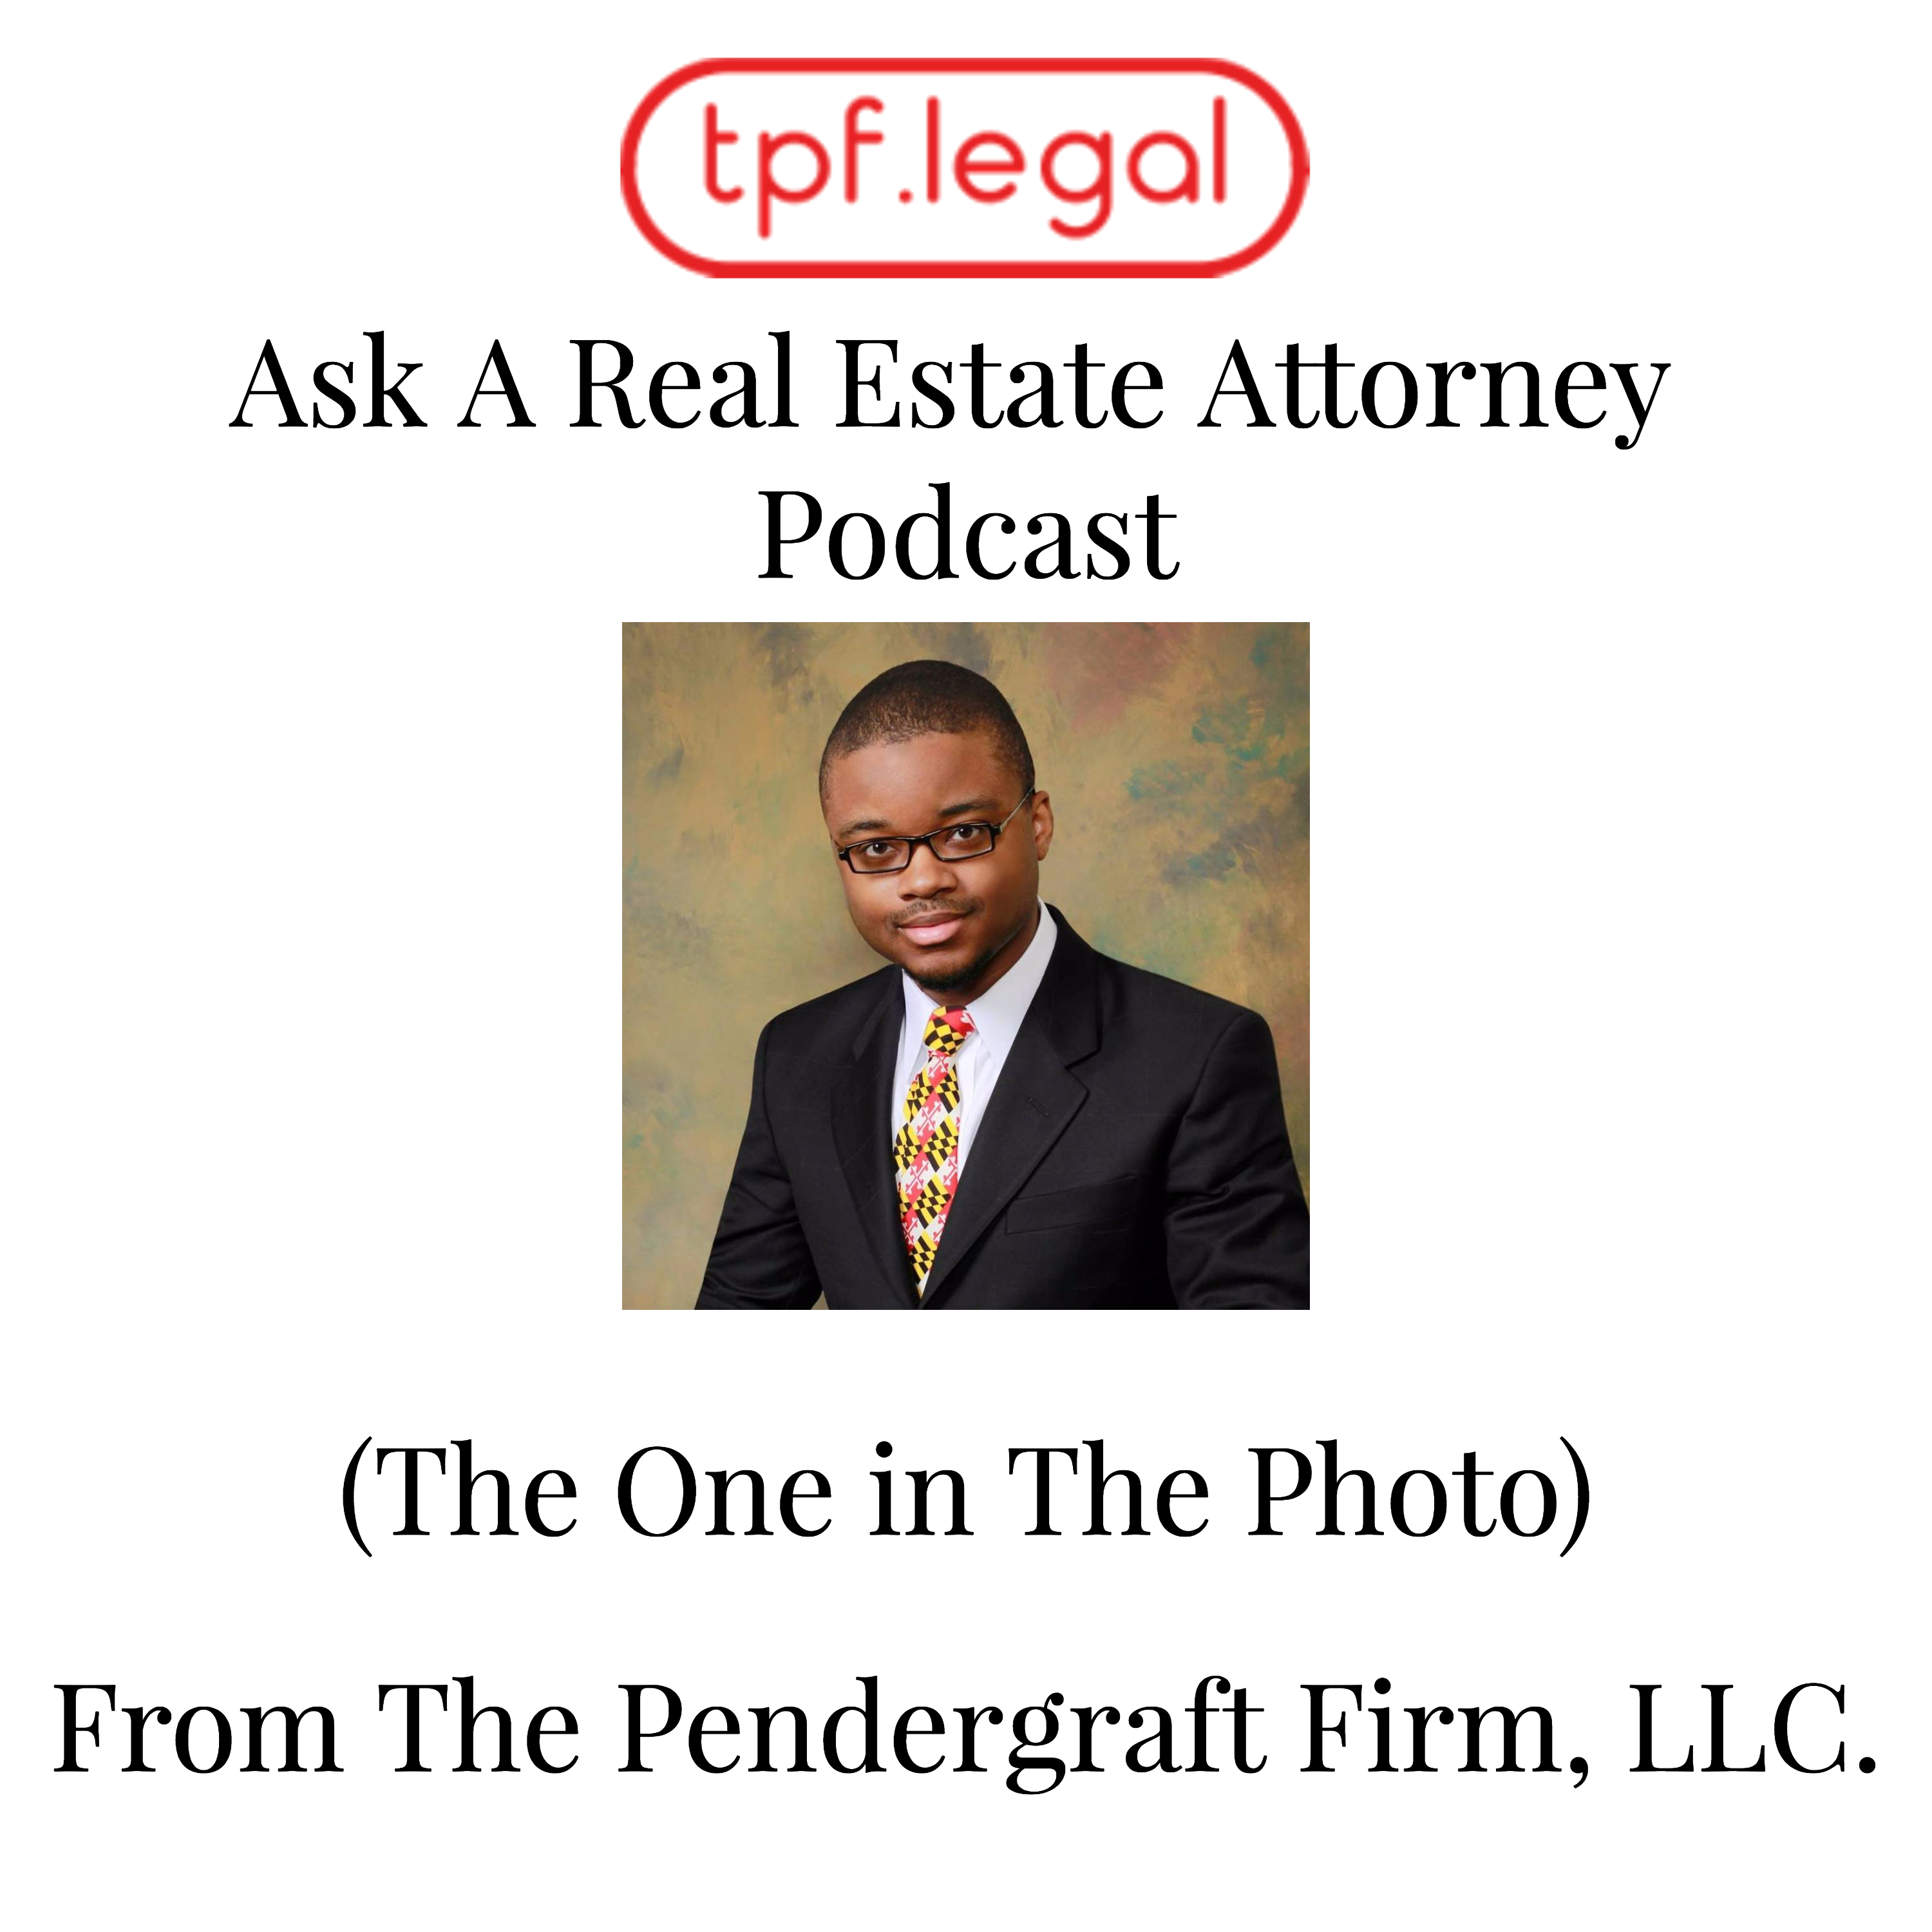 The Real Estate Attorney Podcast